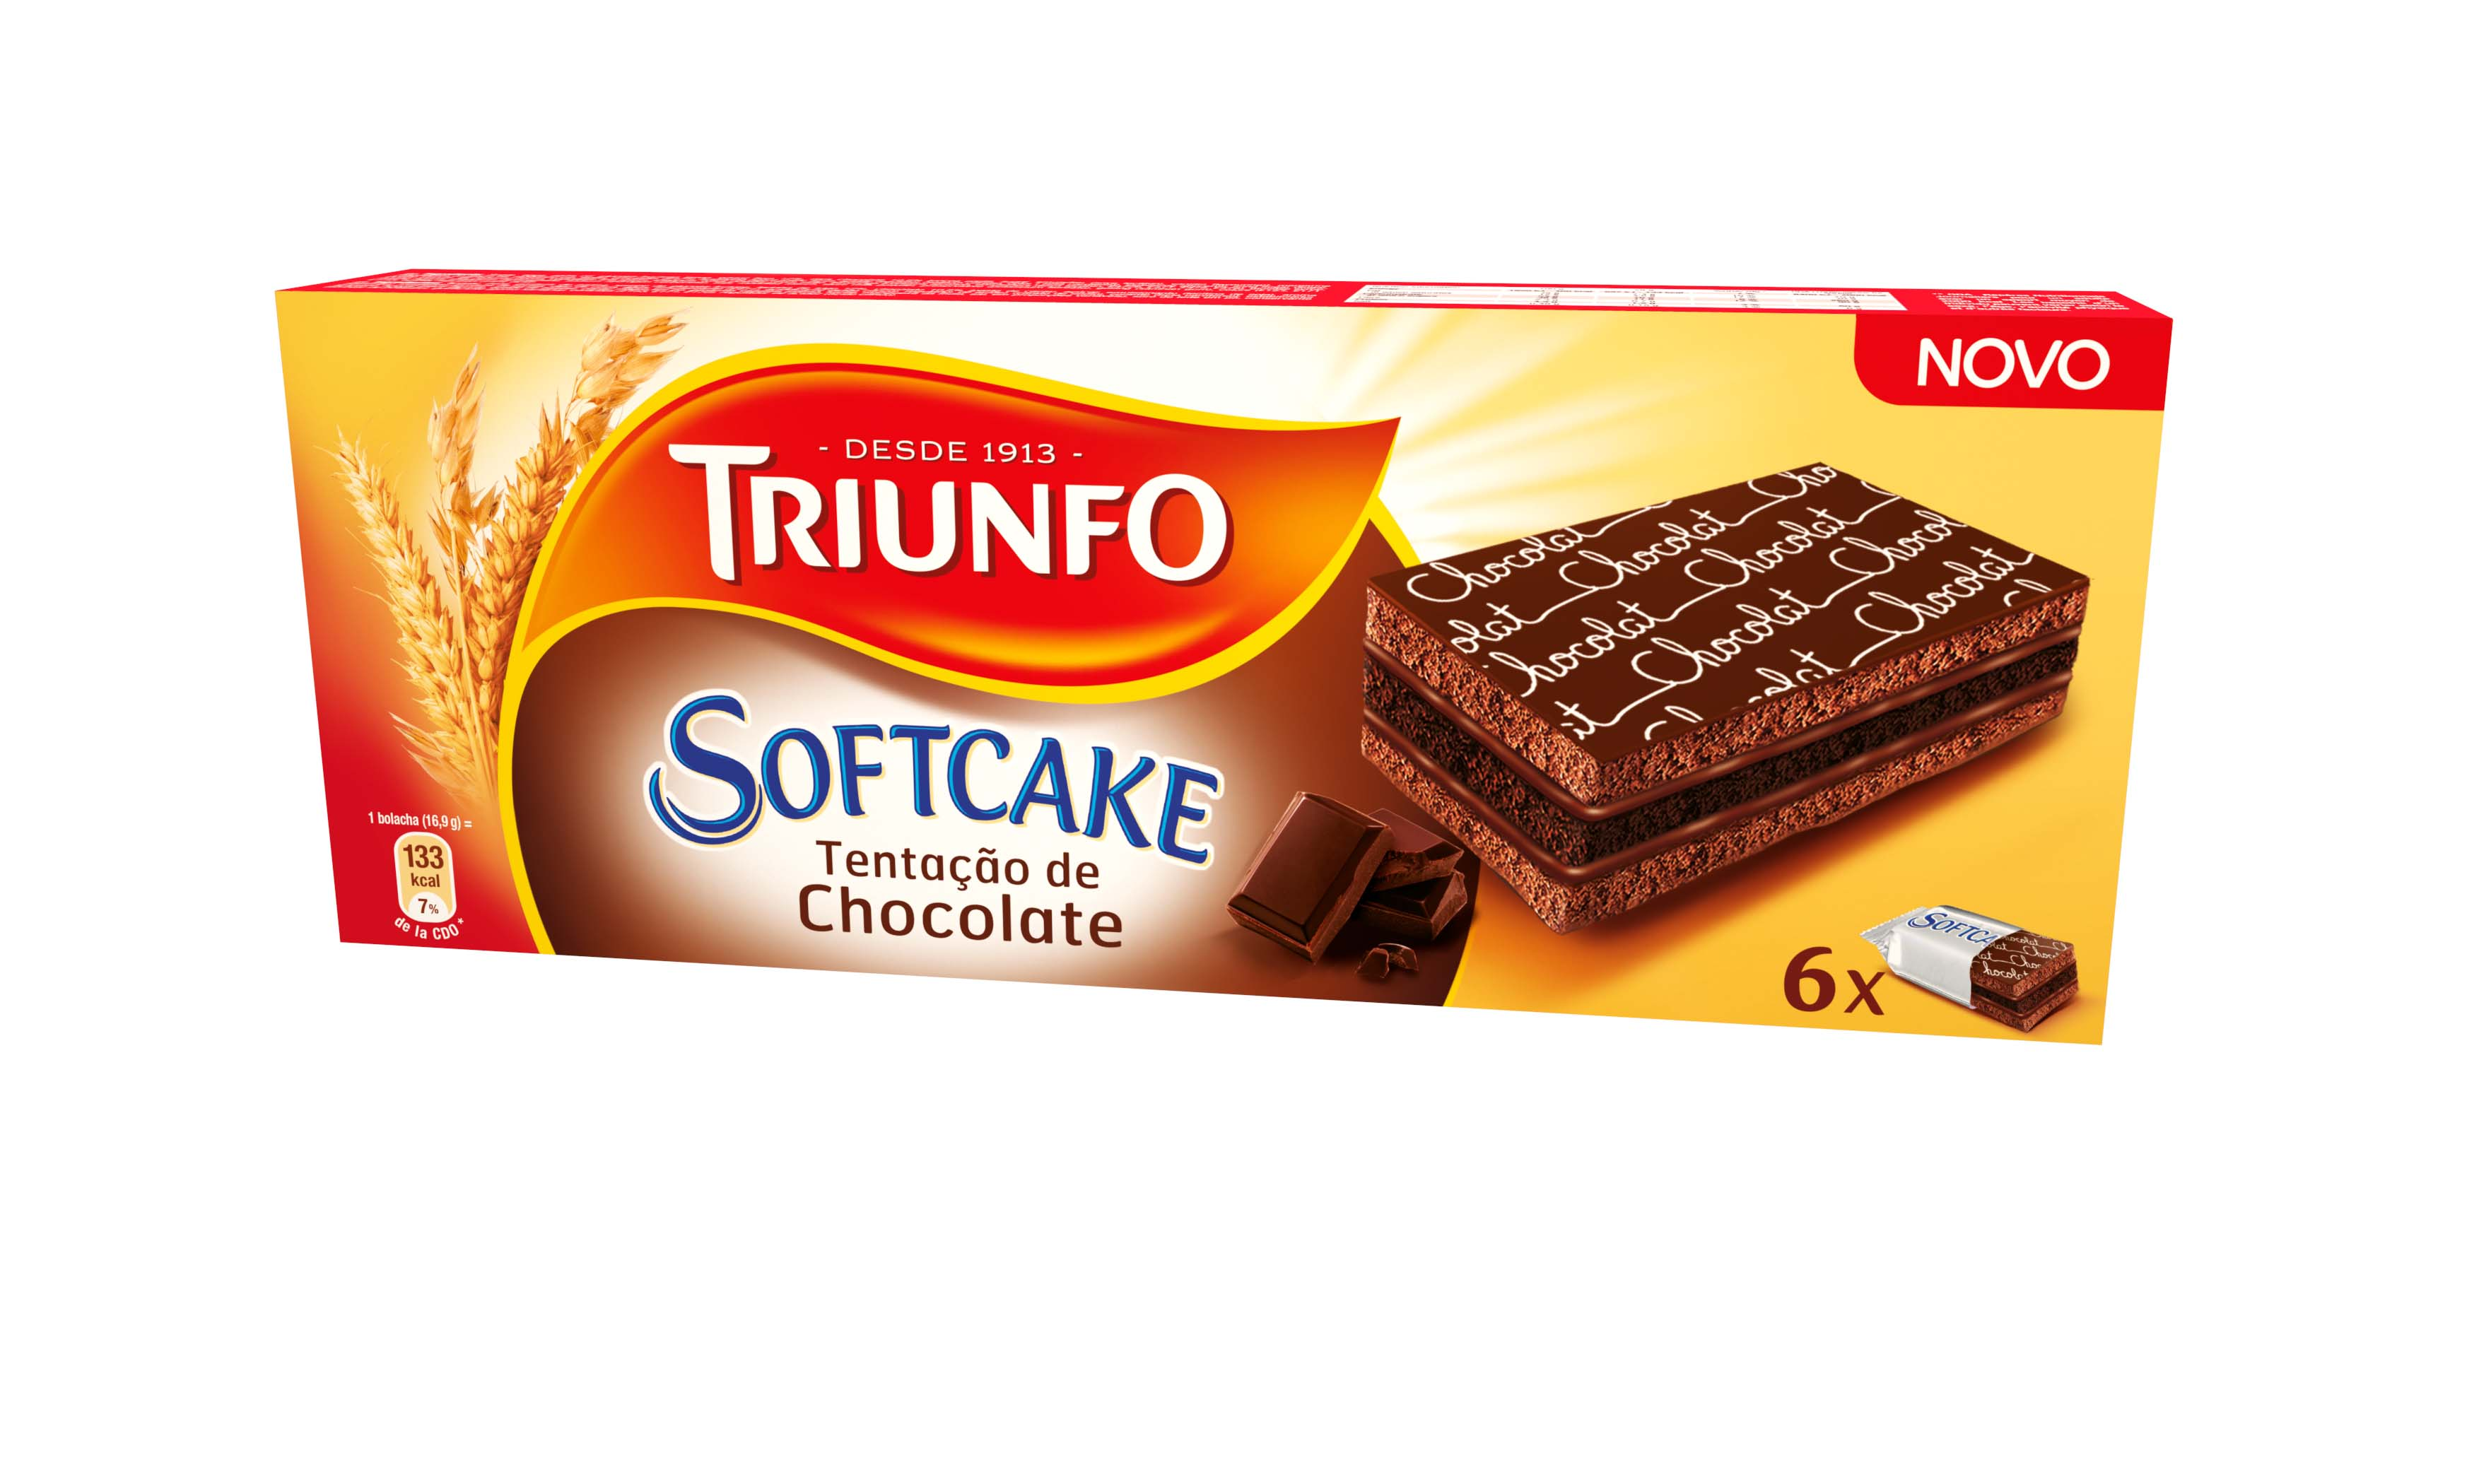 Triunfo Softcake_Chocolate